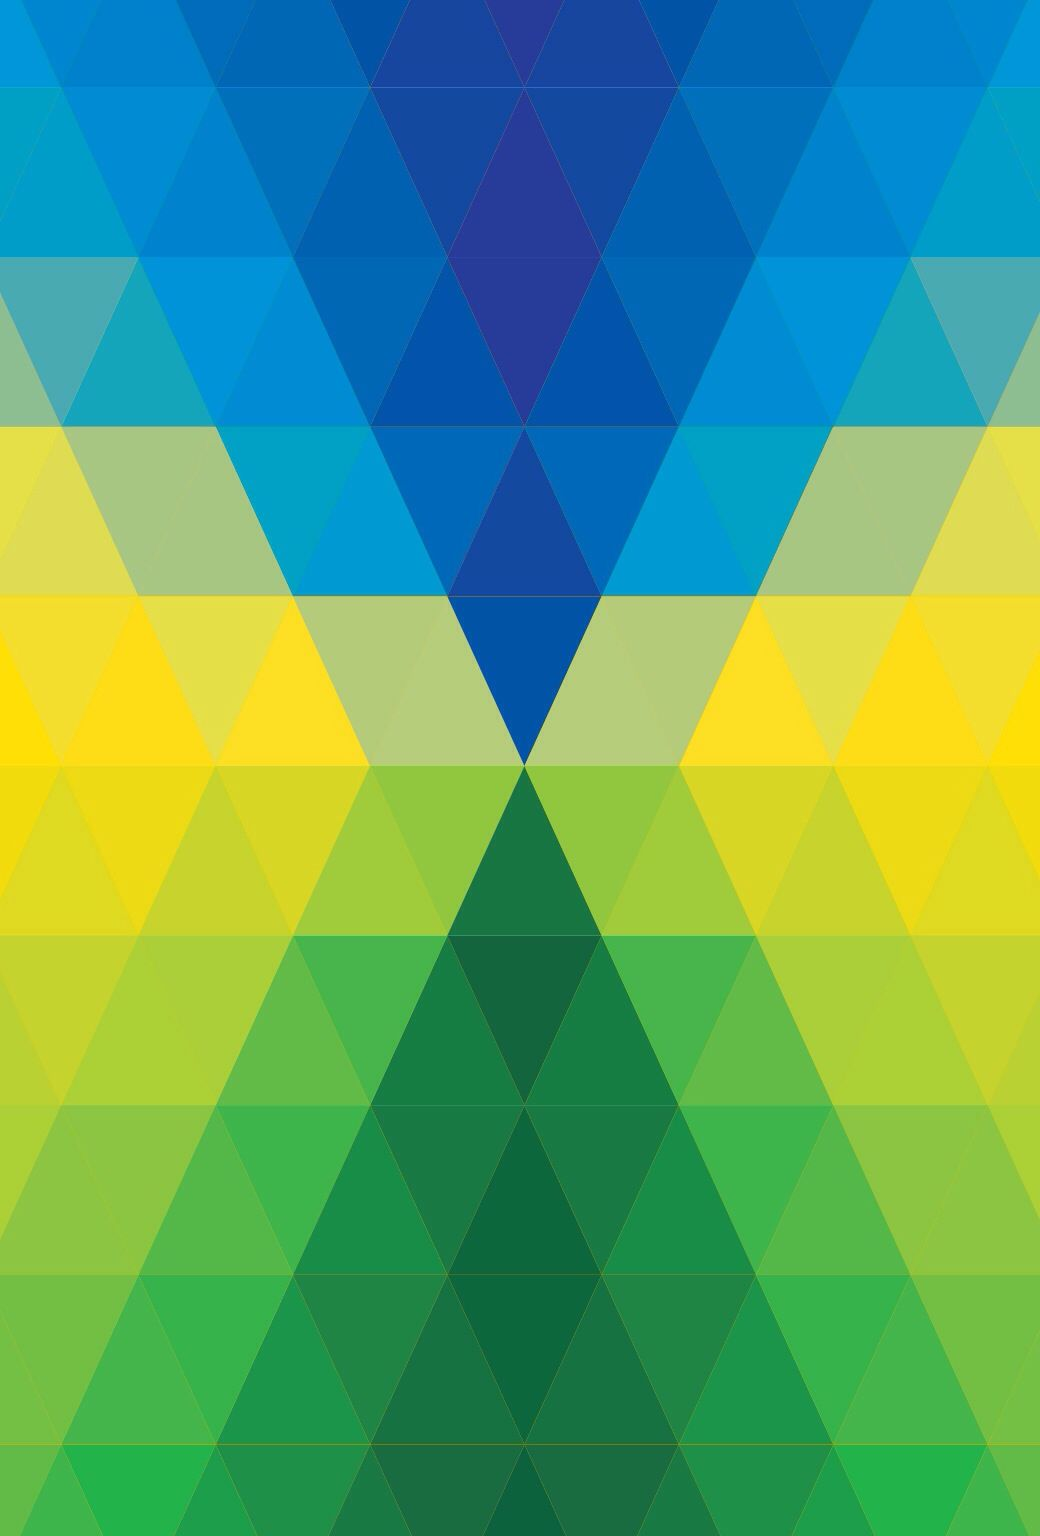 Iphone Wallpaper Blue Yellow Green Abstract Iphone 4s Wallpaper Iphone 5s Wallpaper